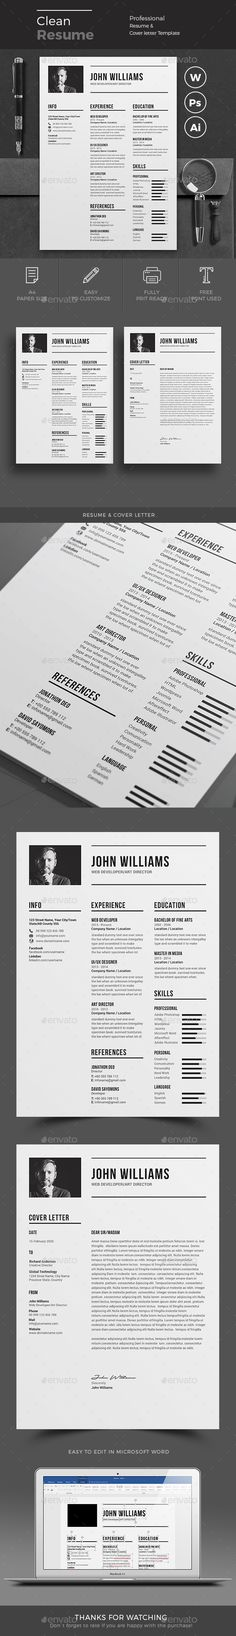 Resume Cv template, Professional resume and Resume cv - instant resume builder